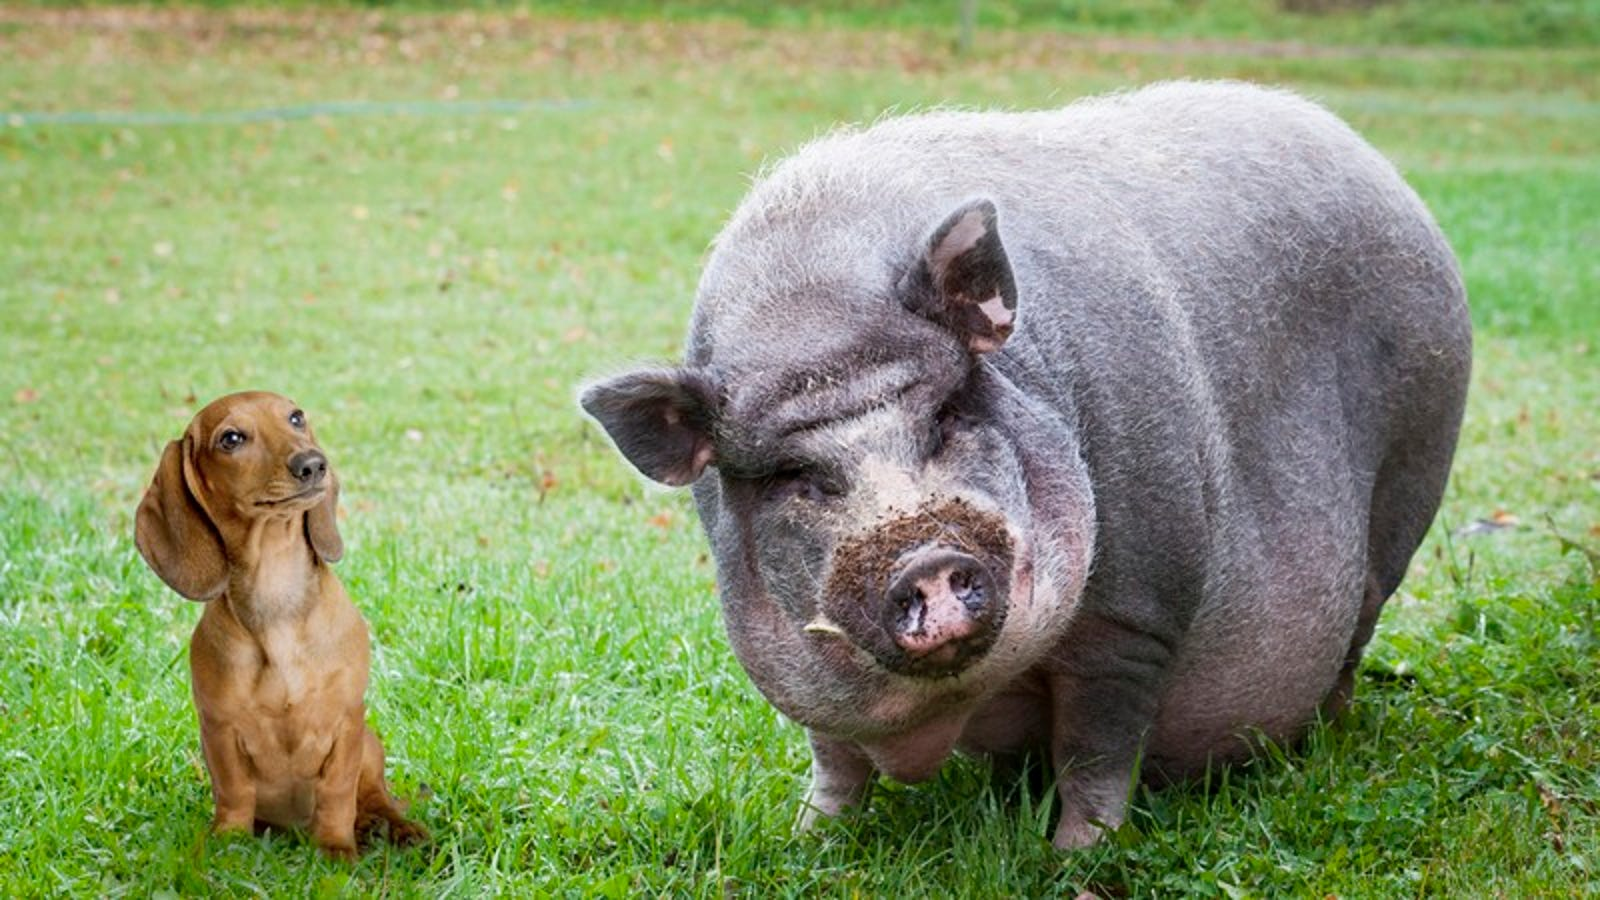 OMG Too Cute: This Weiner Dog And Potbelly Pig That Became